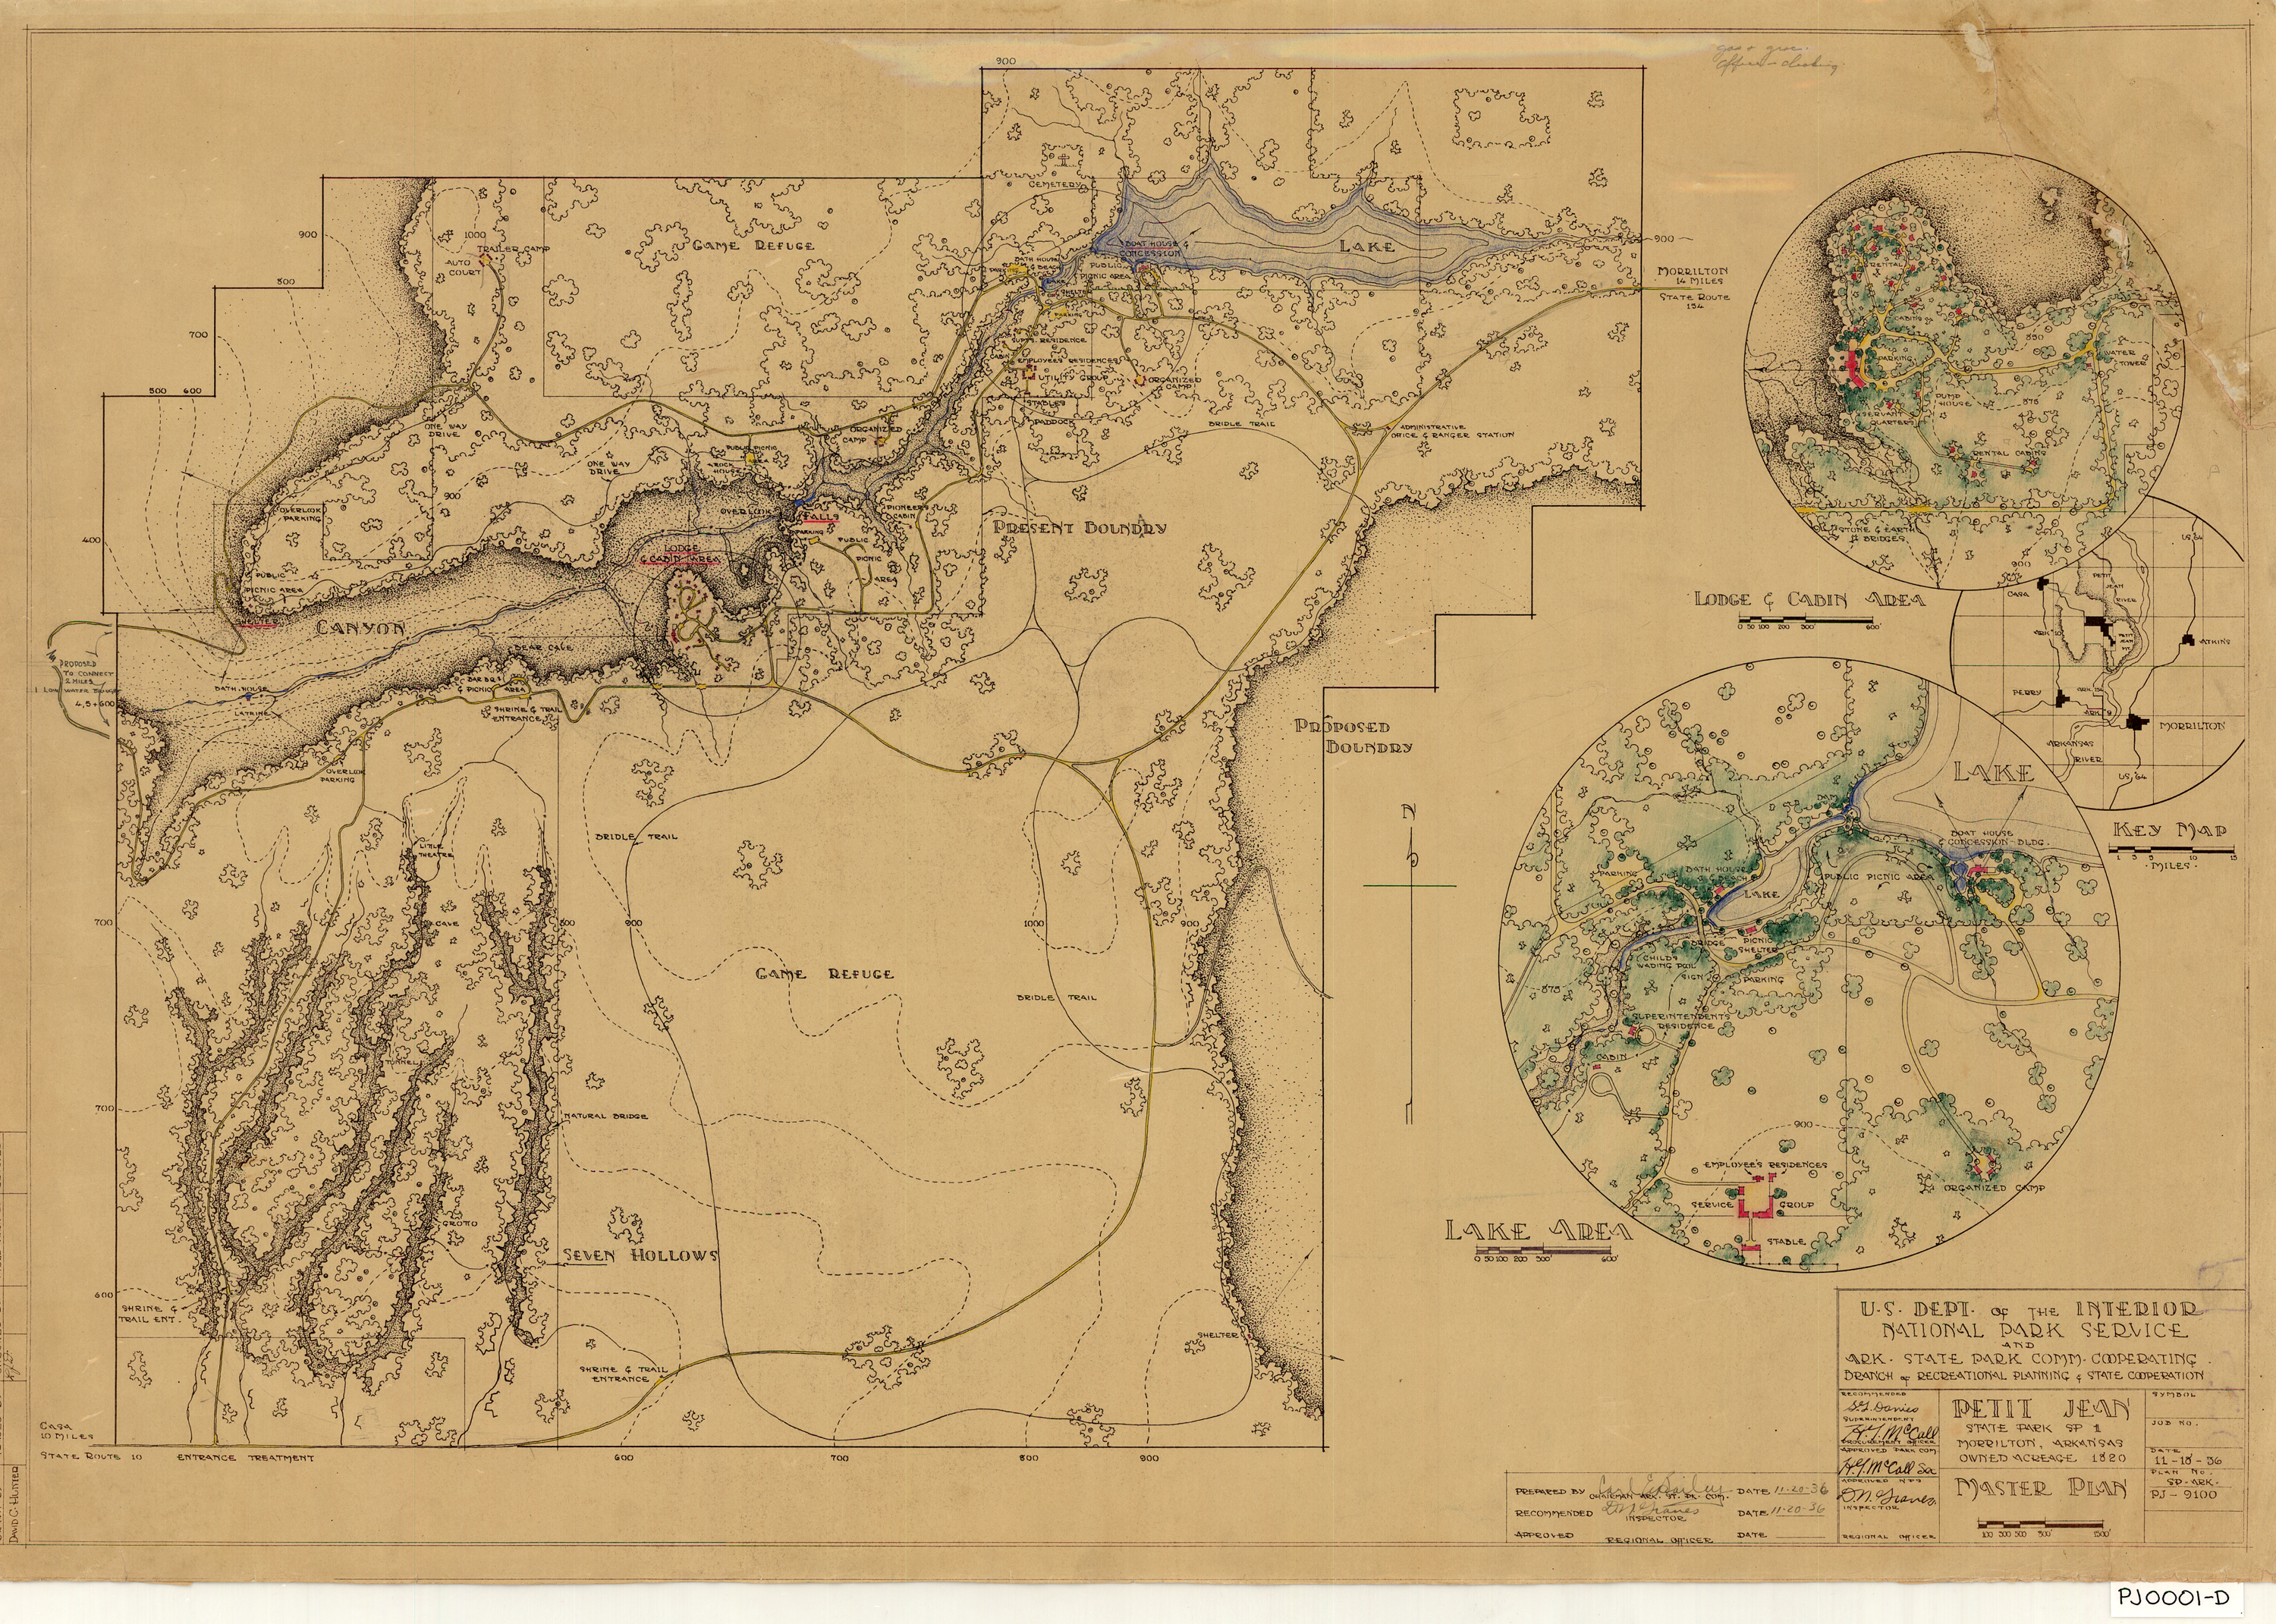 State Parks In Arkansas Map.Map Arkansas State Parks Blog